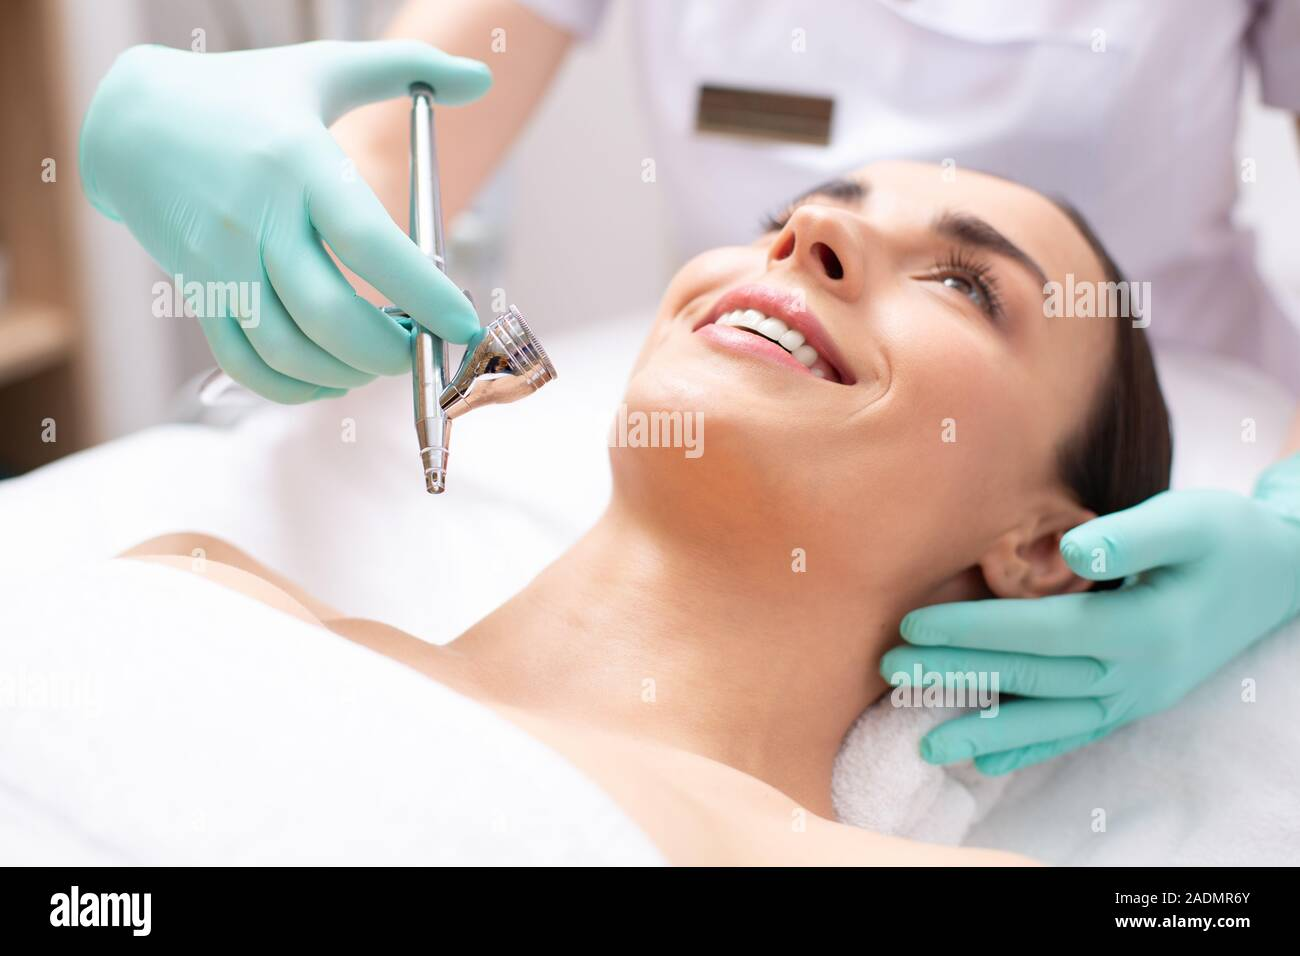 Face of smiling woman and oxygen spray treatment Stock Photo